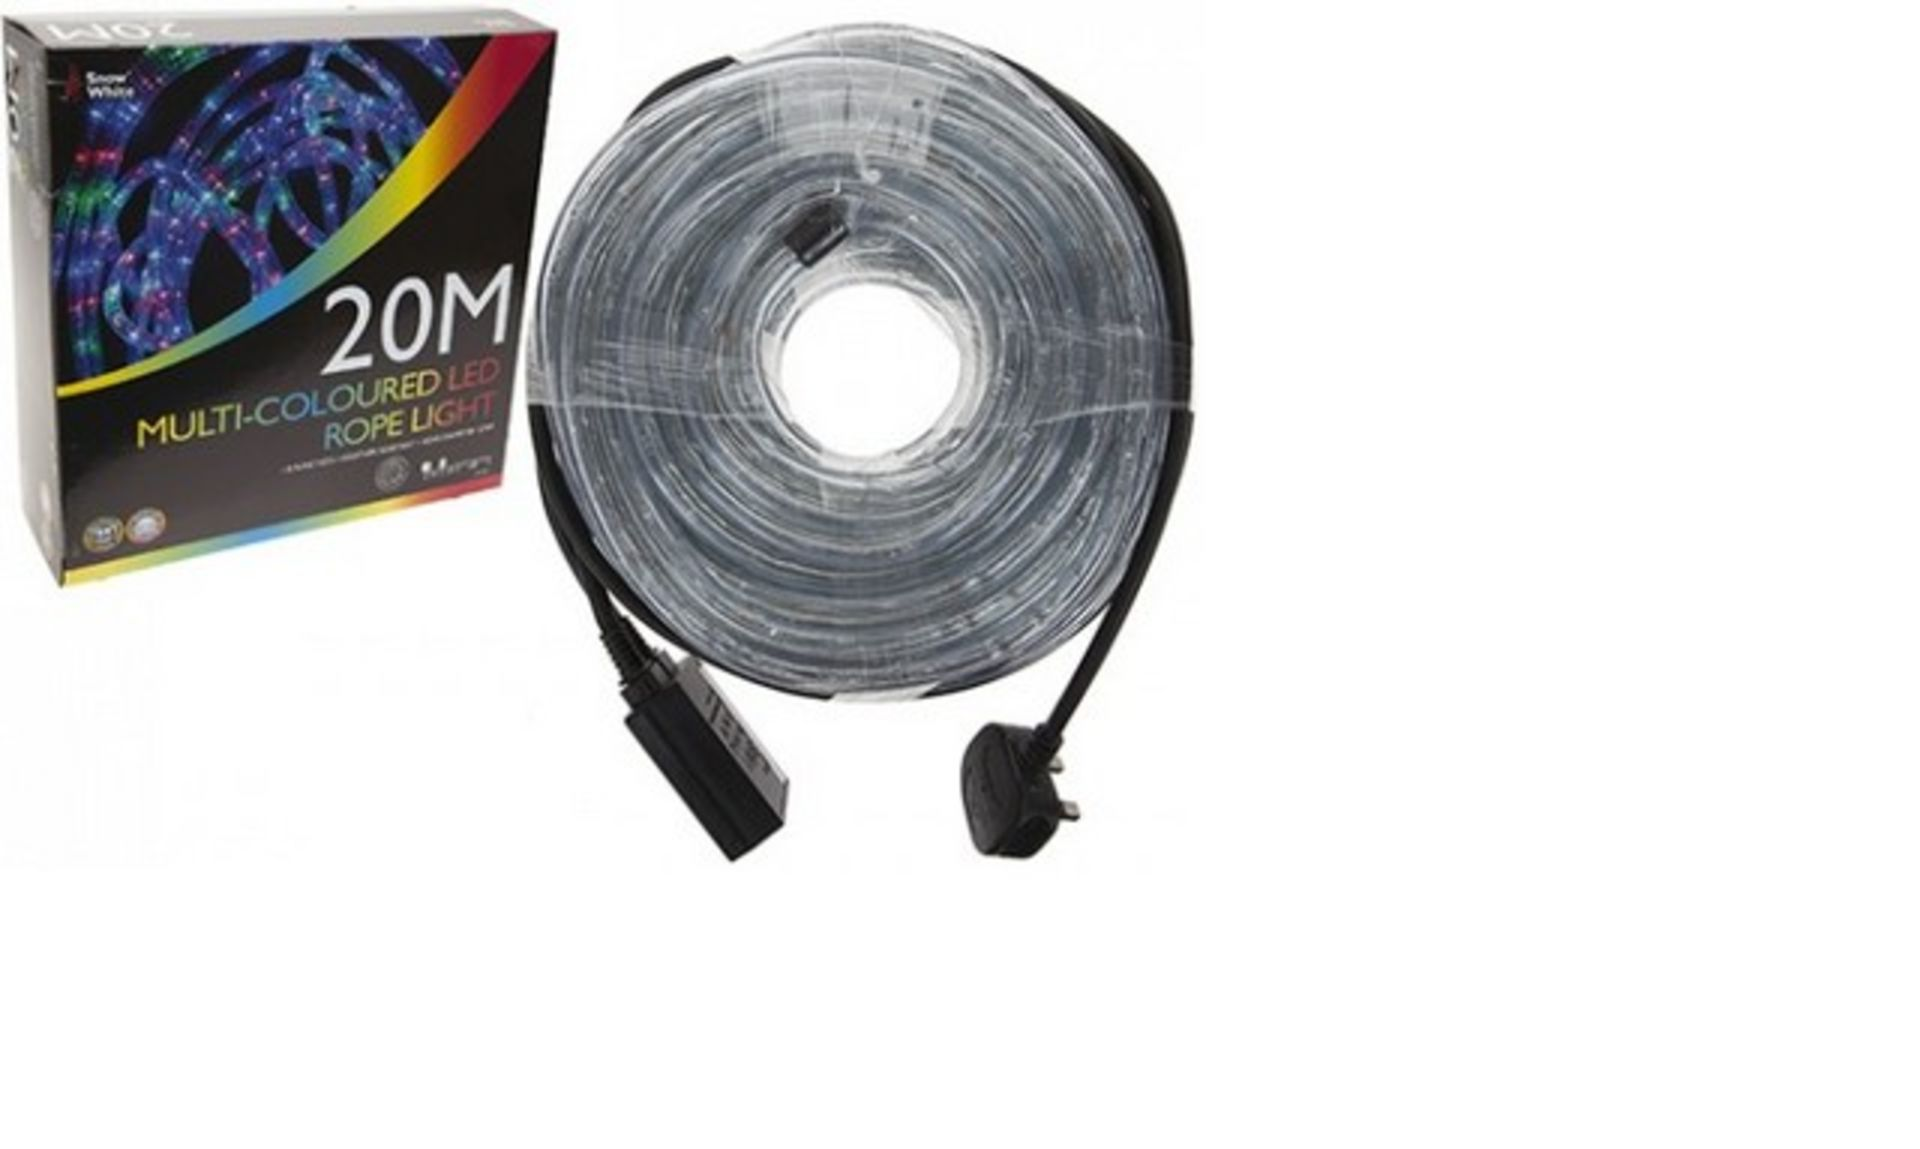 Lot 50105 - V Brand New 20m Multi-Coloured Eight Function Weather Resistant Rope Light